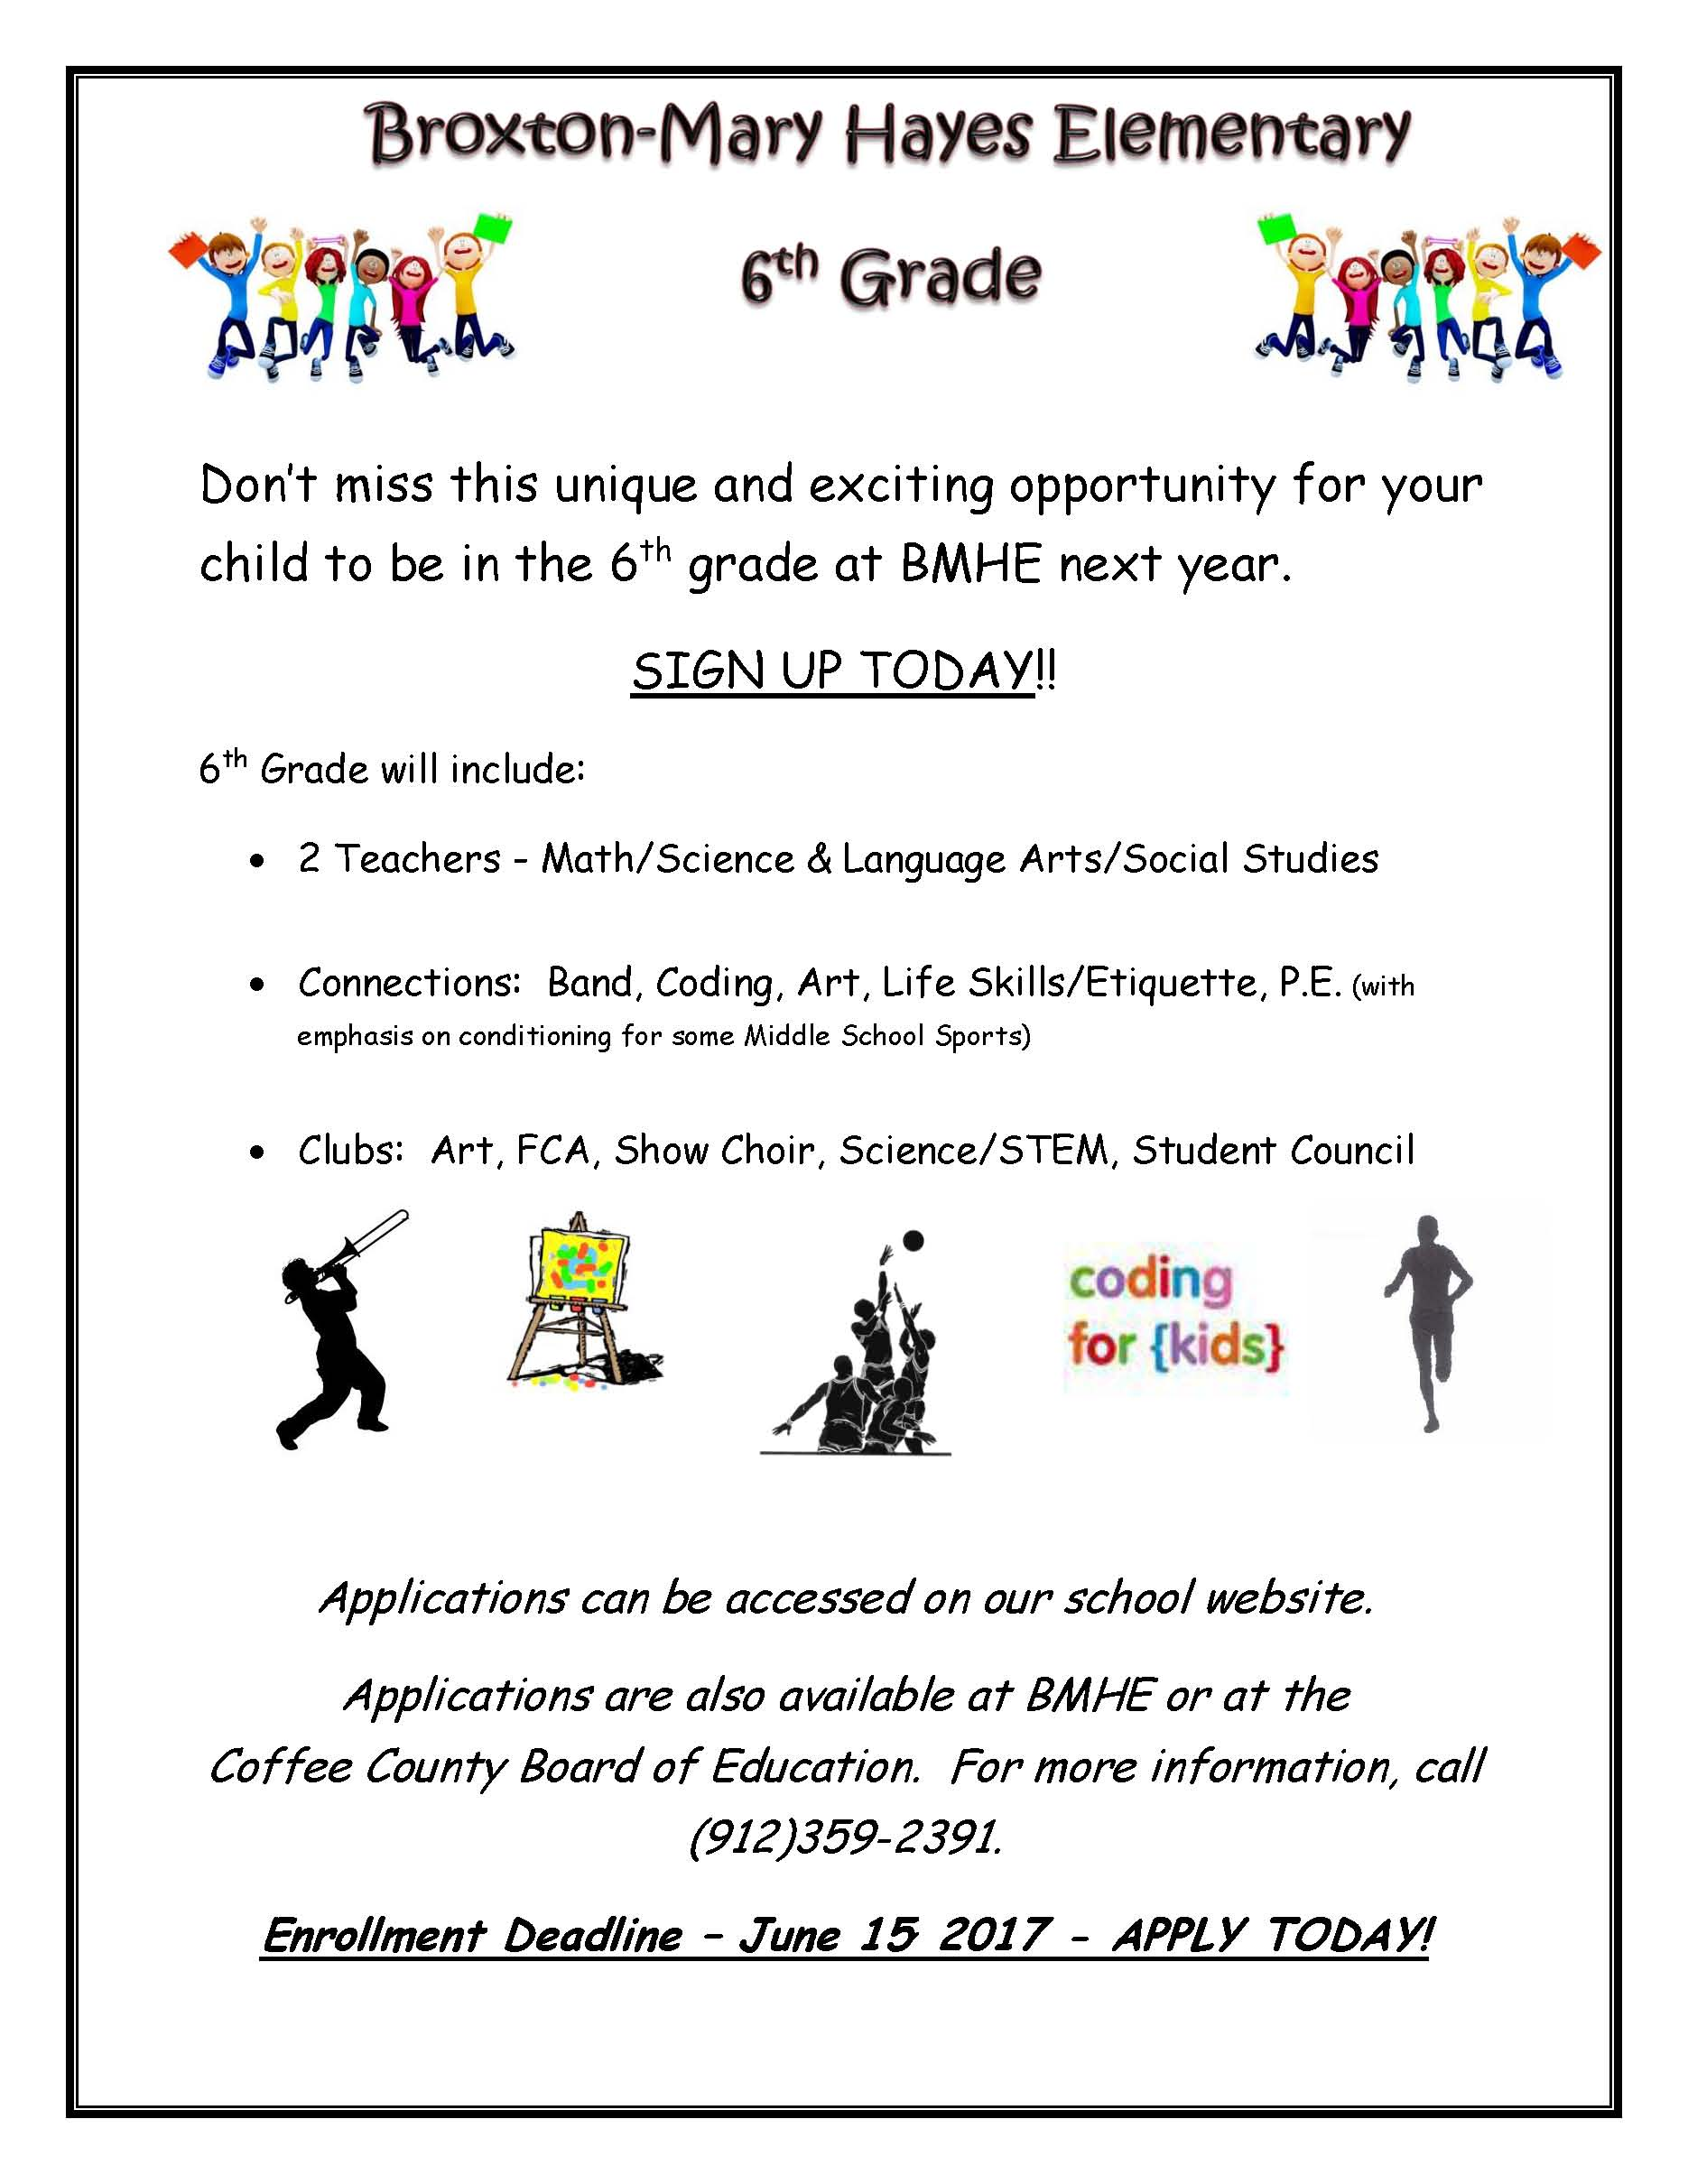 Indian Creek Elementary School: Broxton-Mary Hayes to Offer 6th Grade